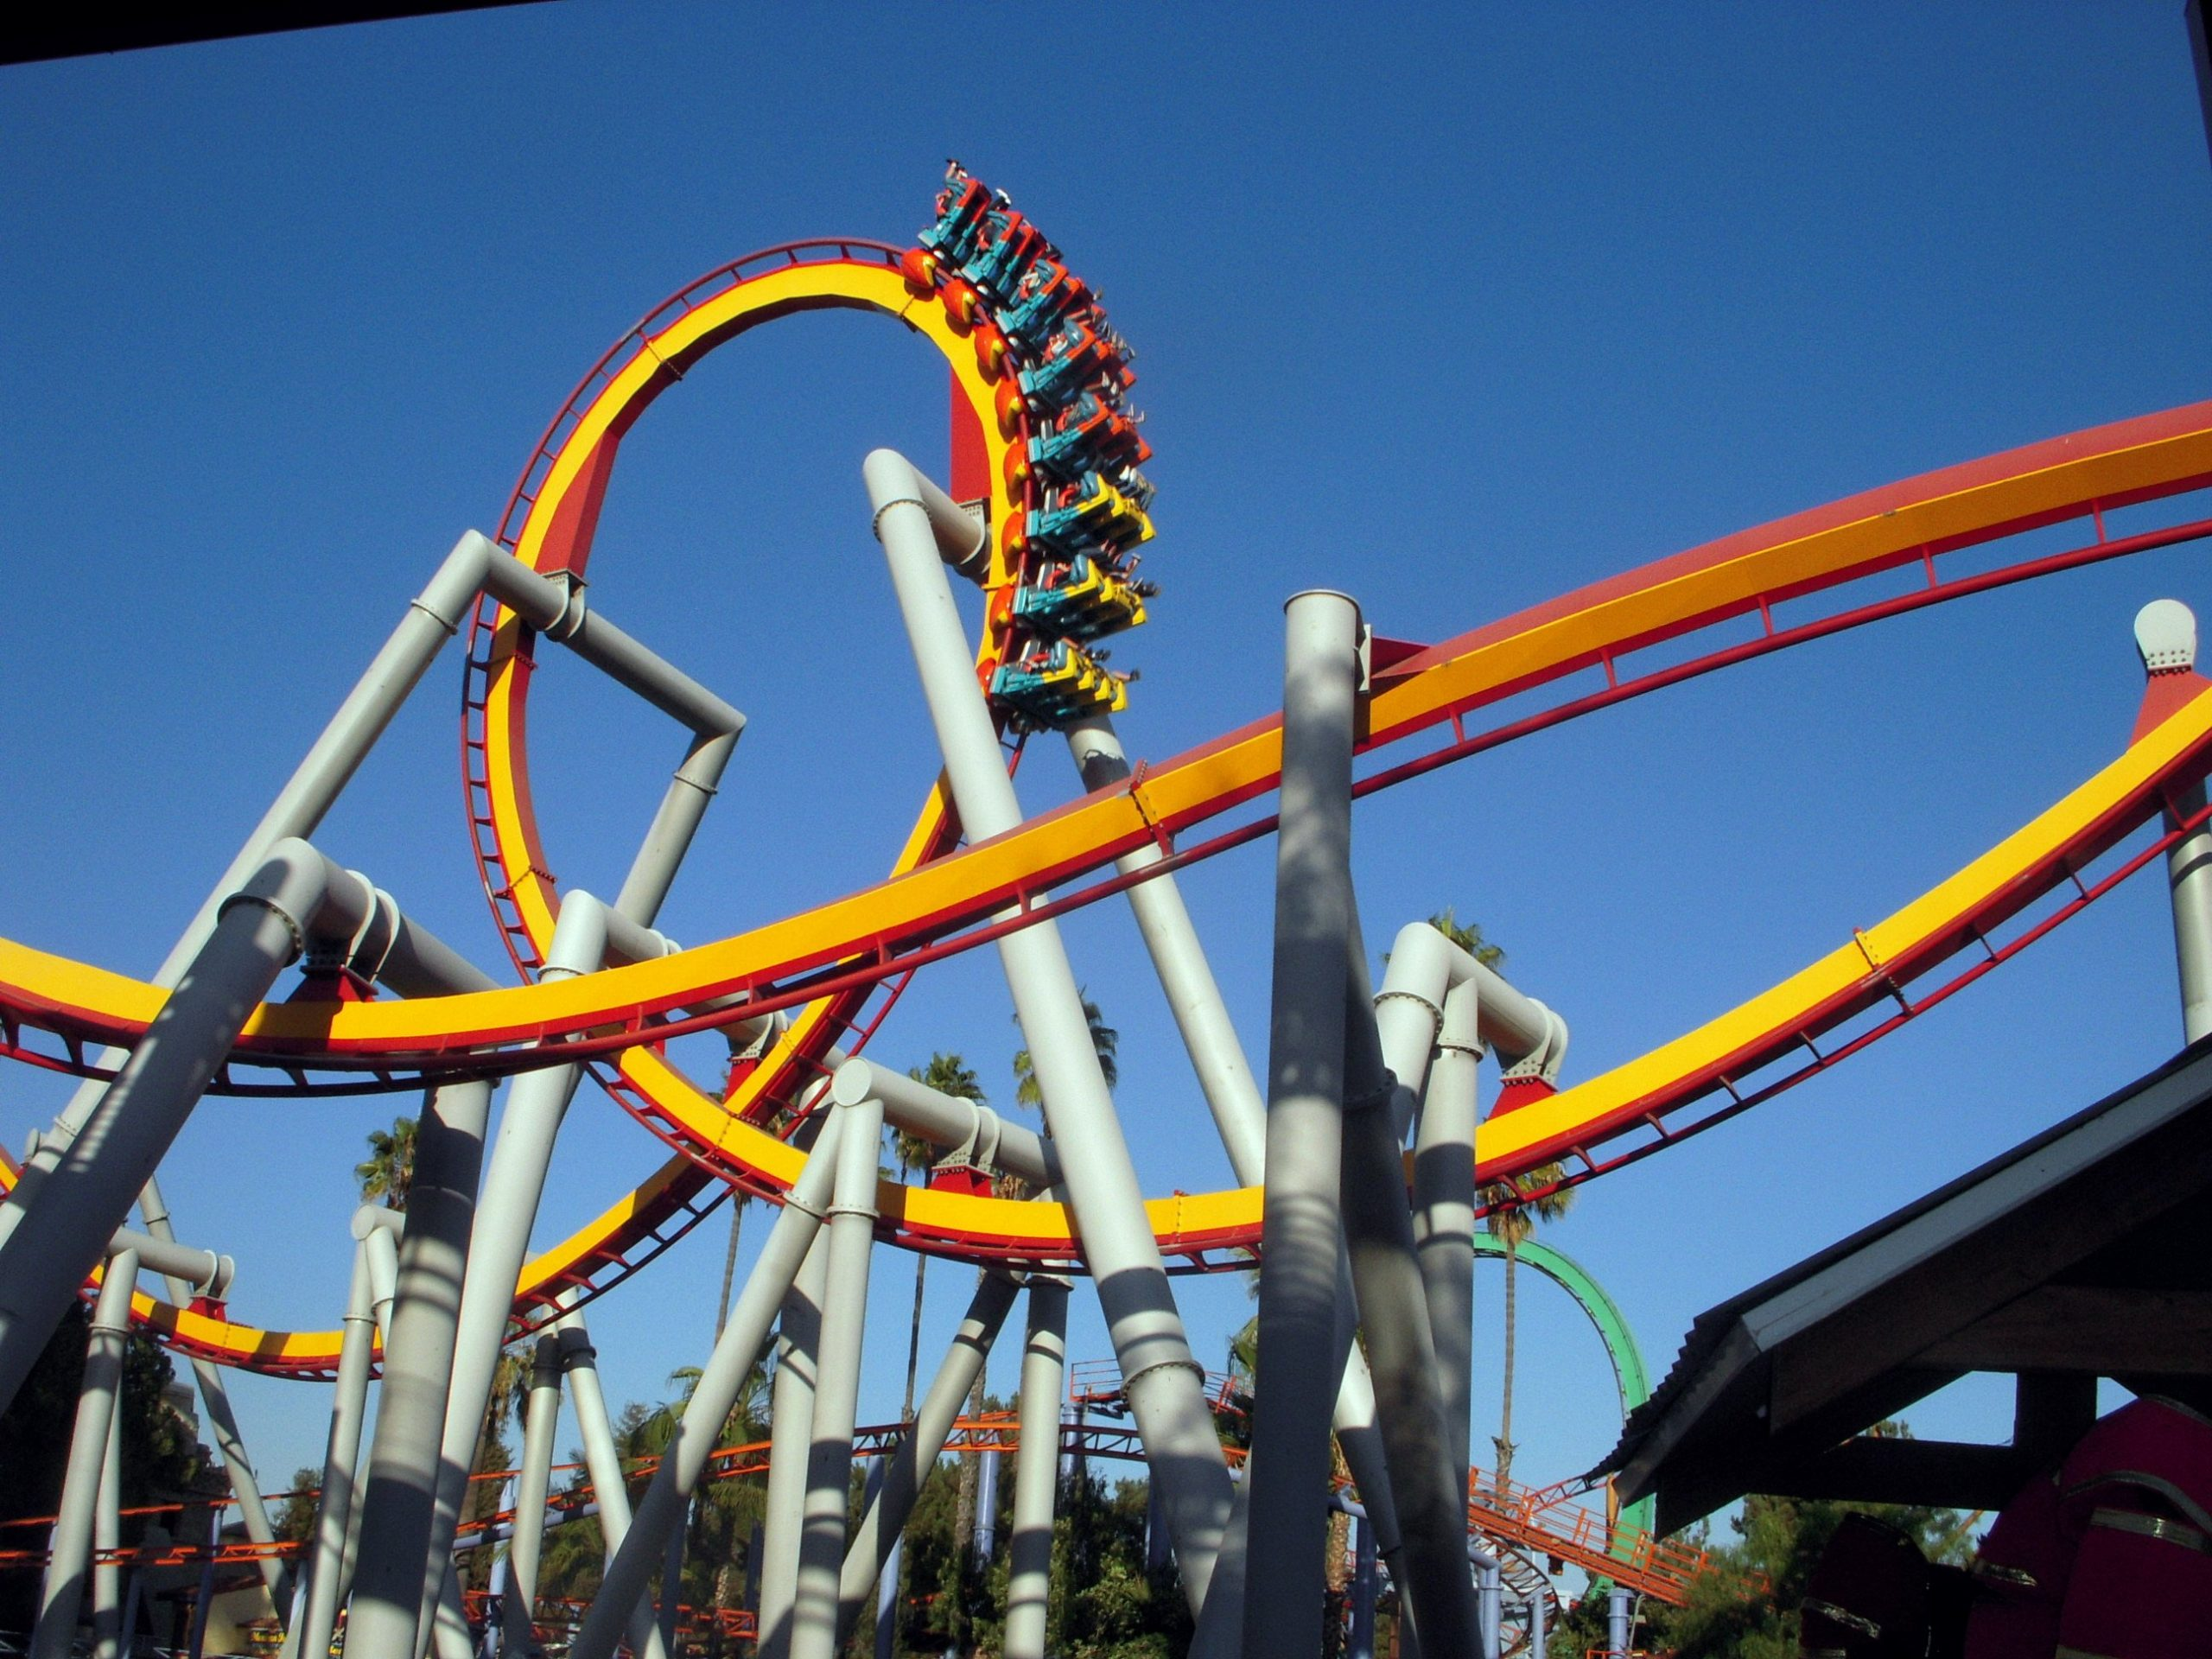 10 Best and Wildest Rollercoaster Rides in the World